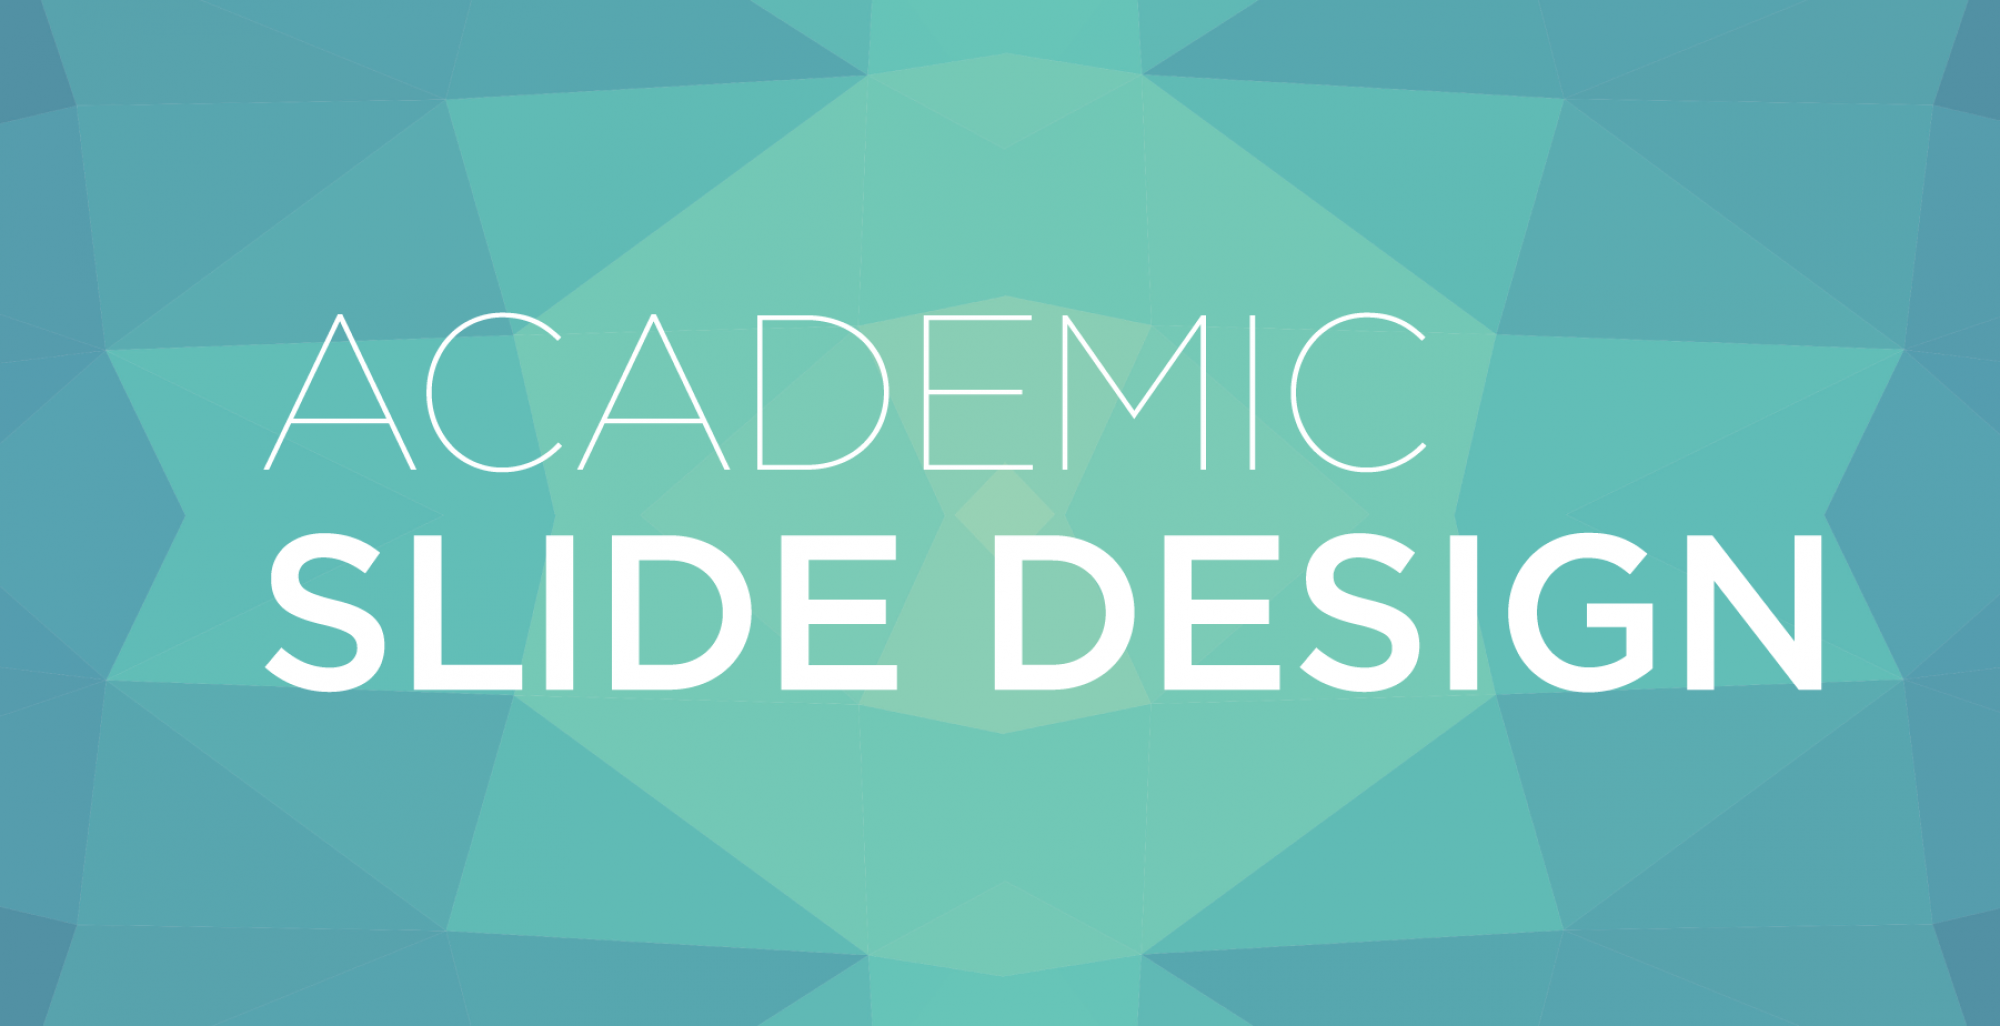 academic slide design visual communication for teaching and